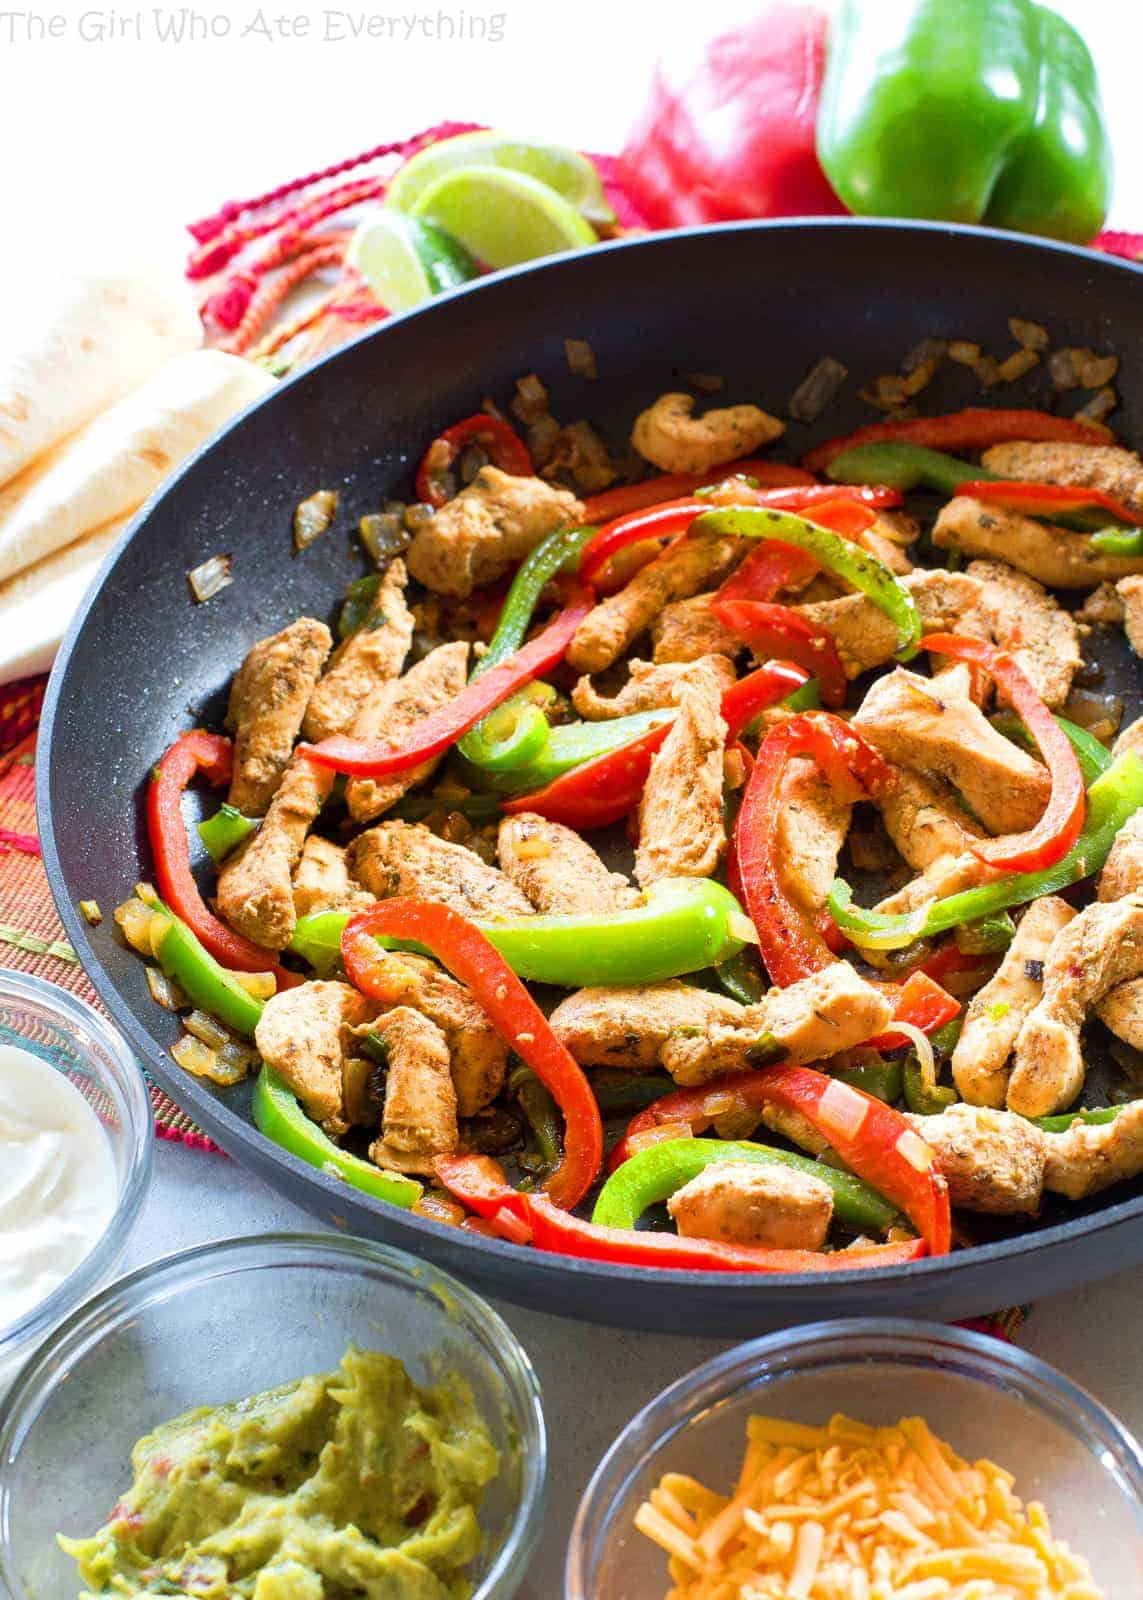 Classic Chicken Fajitas - full of flavor, easy, and just what you want when you're craving fajitas. the-girl-who-ate-everything.com